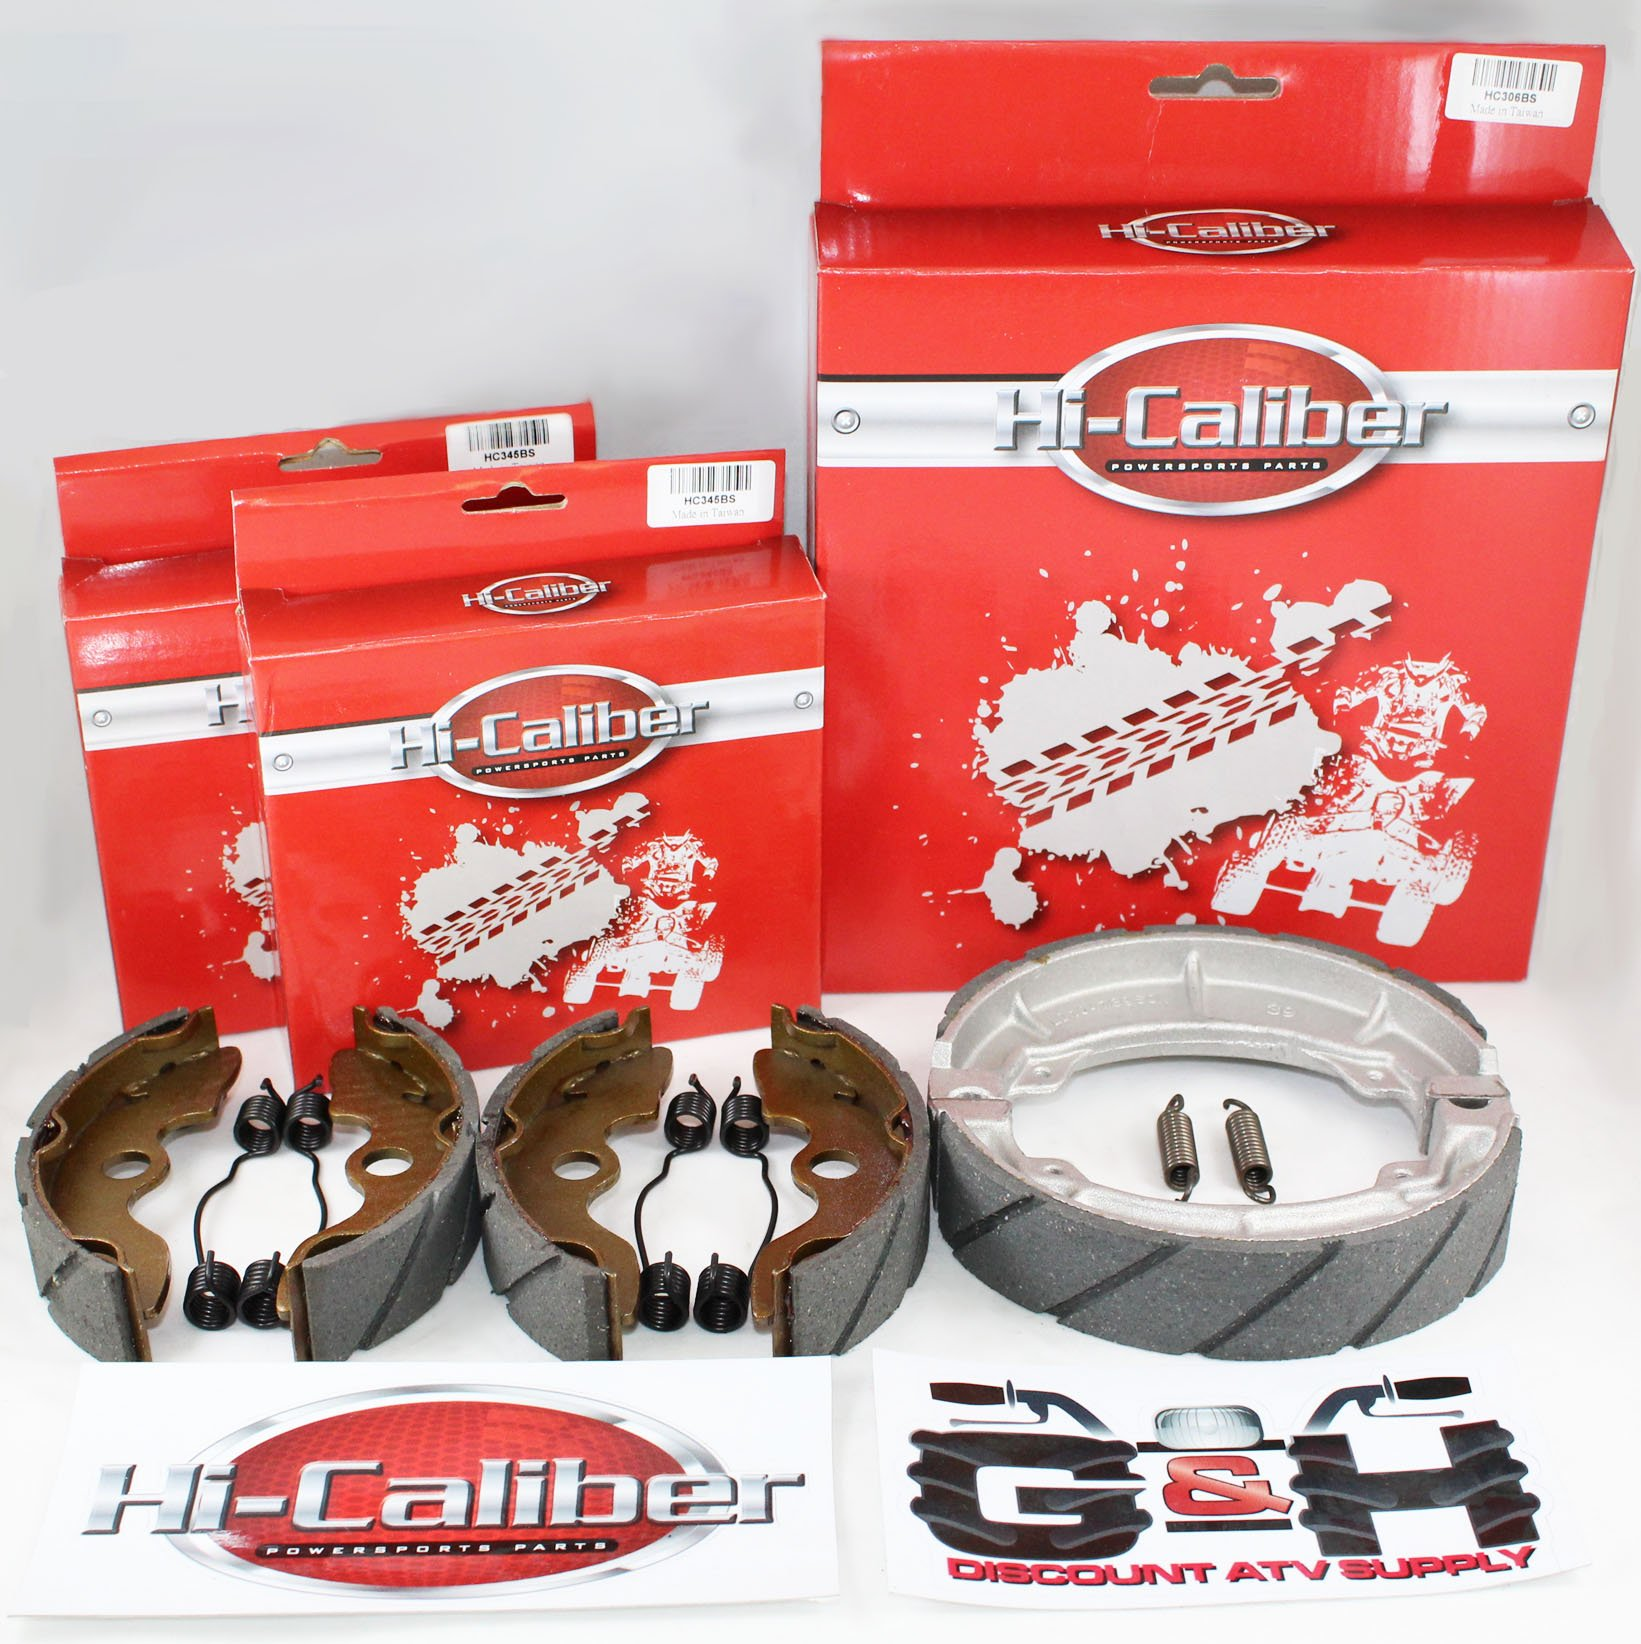 FRONT & REAR SET OF WATER GROOVED BRAKE SHOES + SPRINGS For the Honda TRX 200SX Fourtrax by Hi-Caliber Powersports Parts